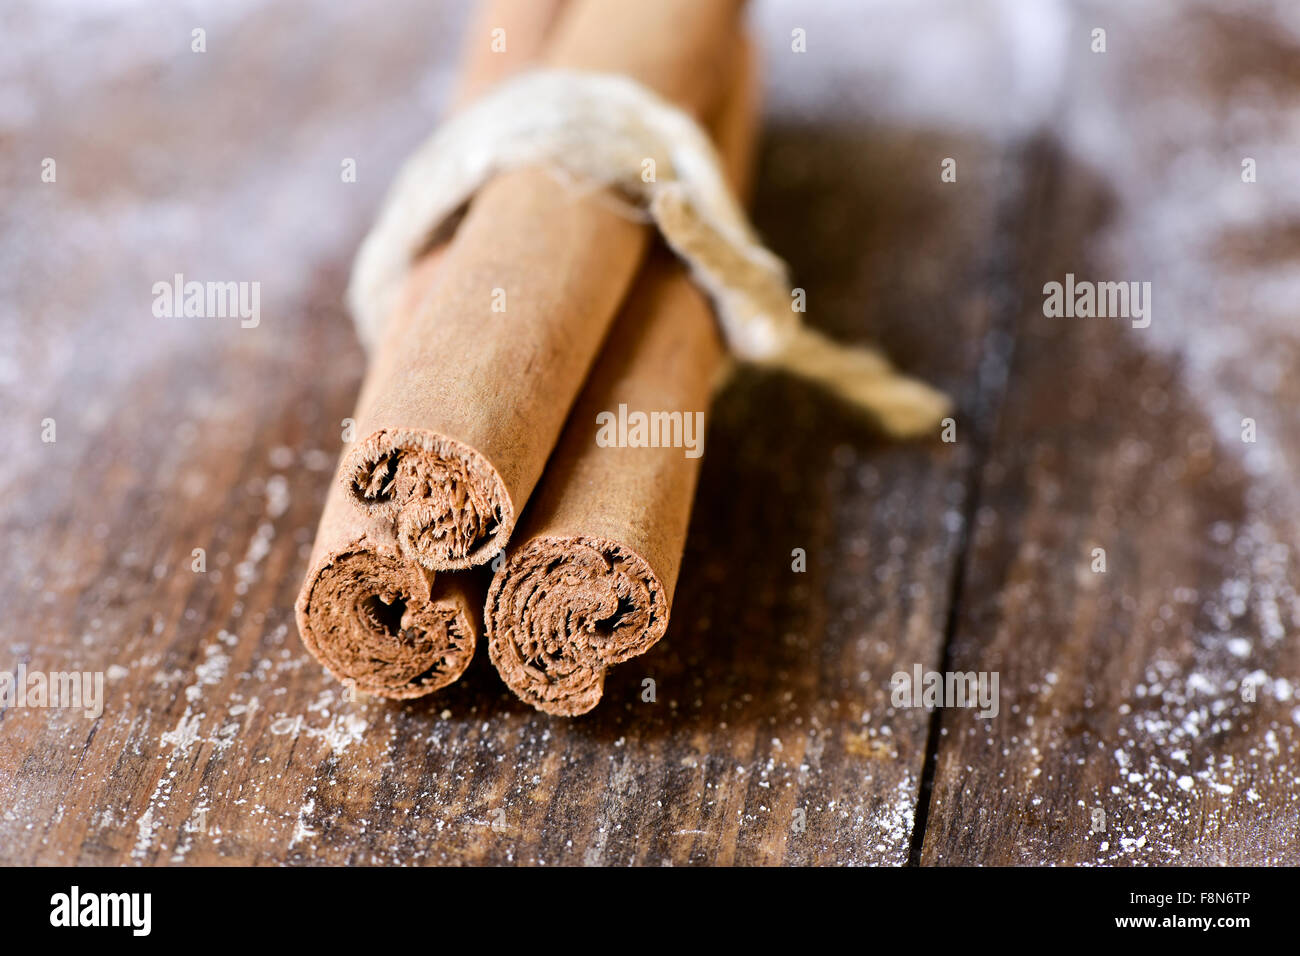 some cinnamon quills tied with a string on a rustic wooden surface Stock Photo